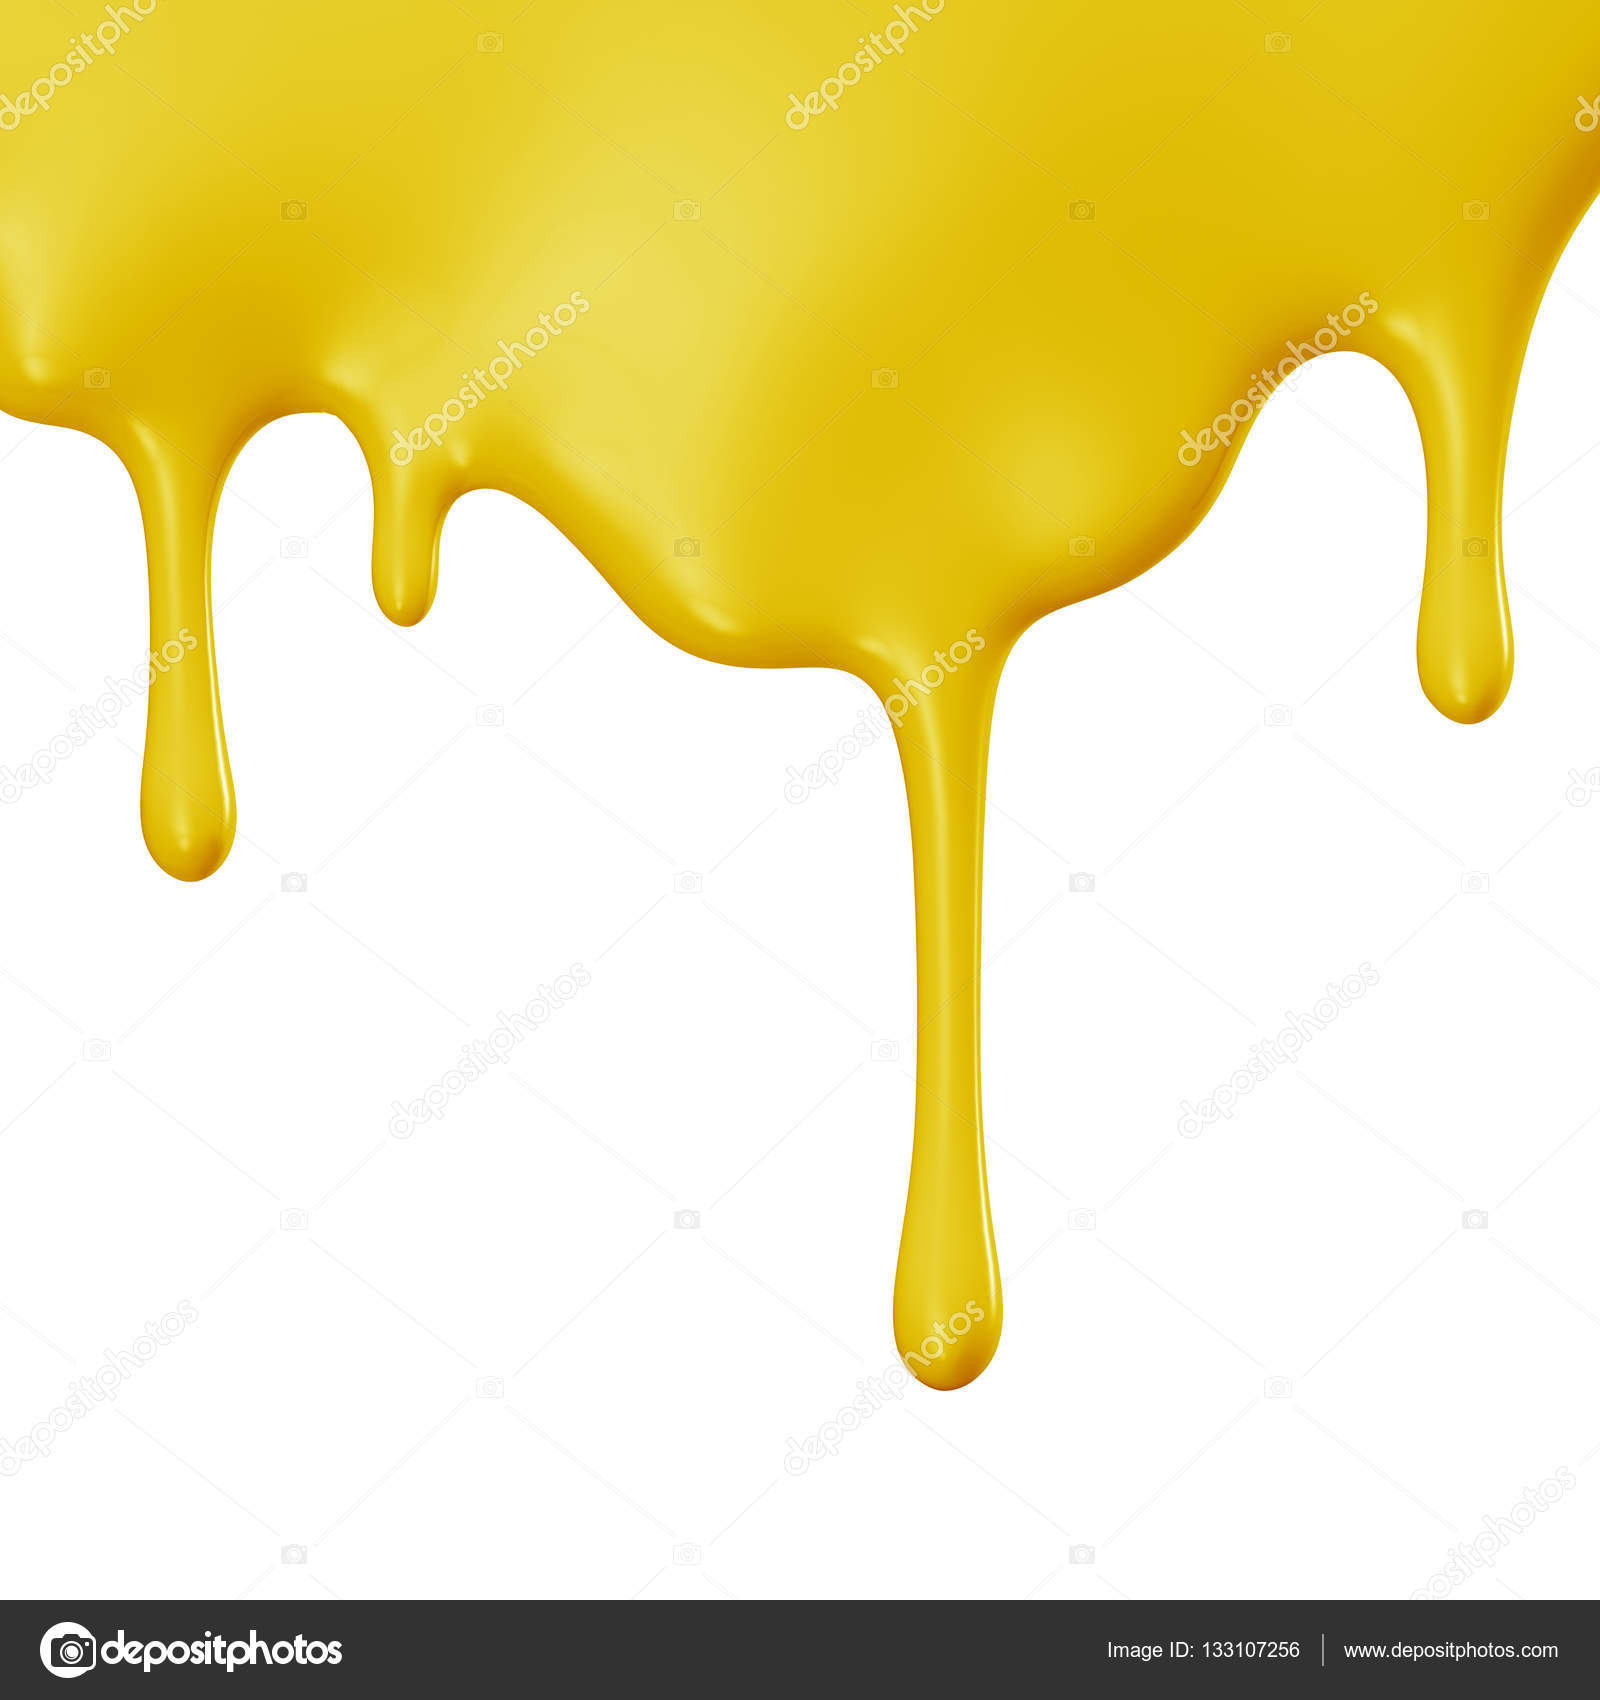 Yellow Paint Yellow Paint Dripping Isolated Over White Background  Stock Photo